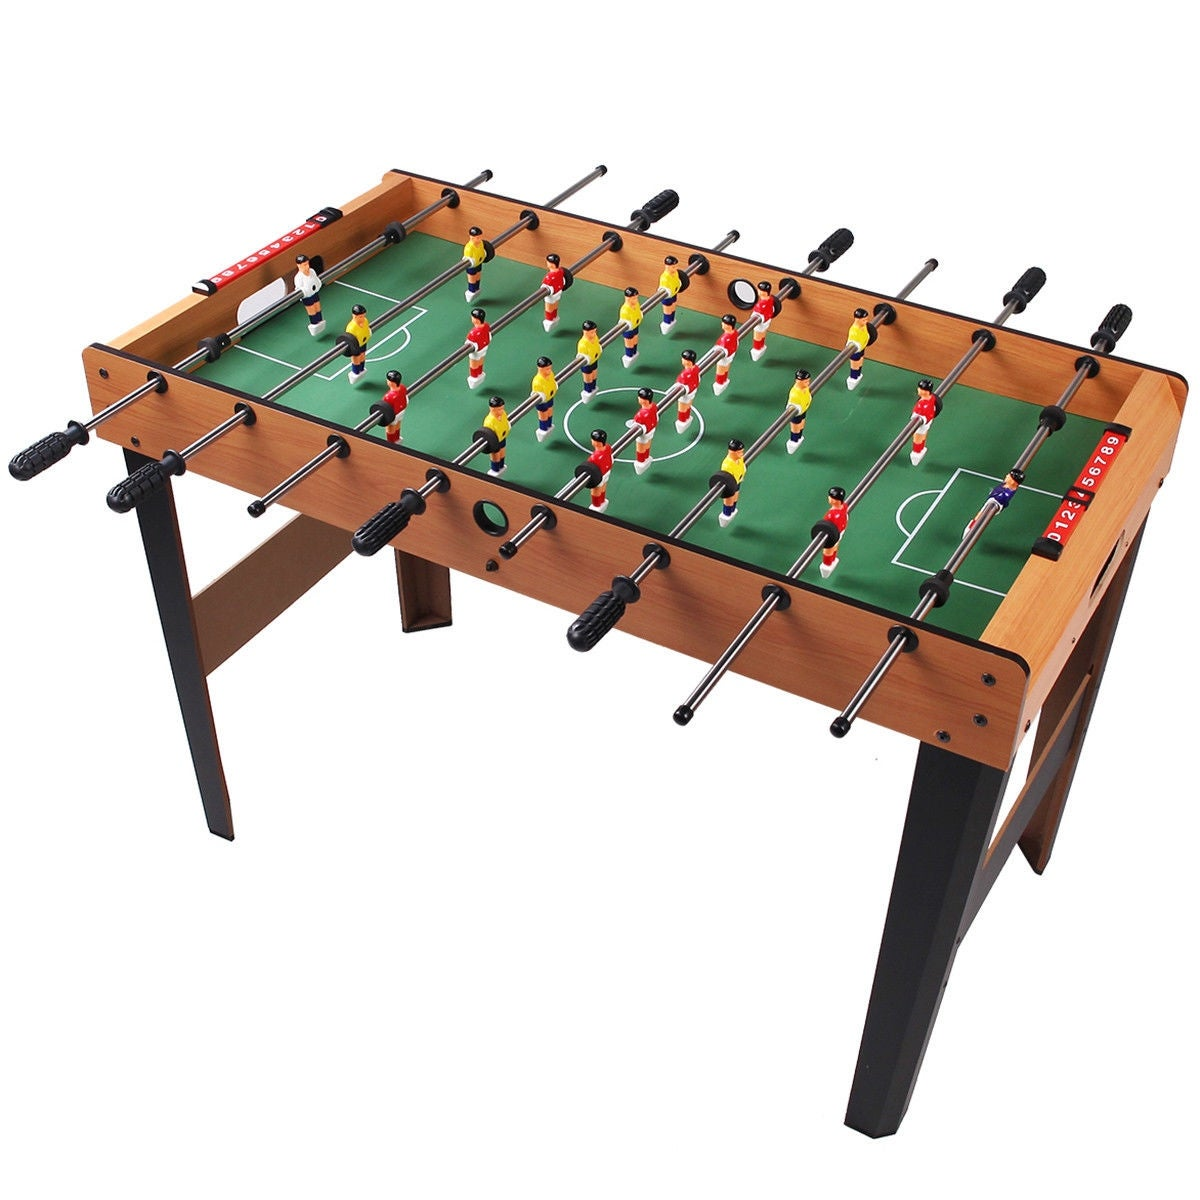 Gymax Foosball Table Arcade Game Soccer For Kids Christmas Gift   As Pic